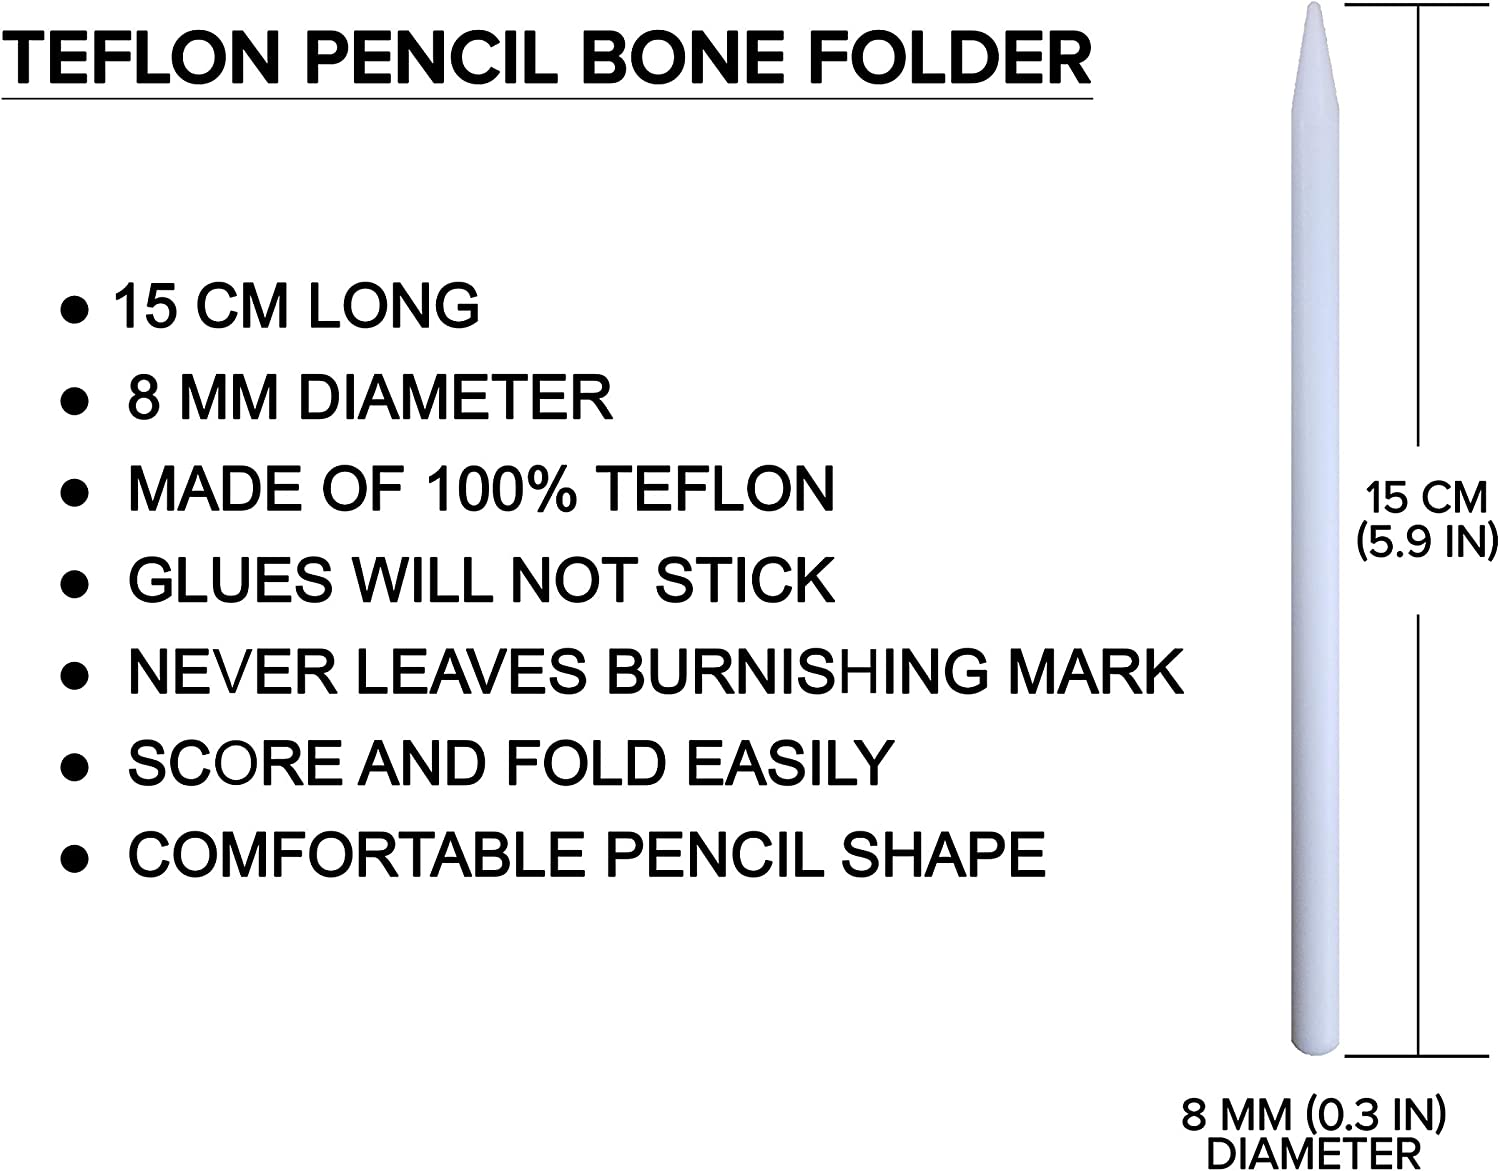 100/% Teflon Premium Quality for Scoring Creasing Scrapbooking /& More White Extra Smooth Origami Crafty Gnome Teflon Pencil Bone Folder and Scoring Tool Folding Bookbinding